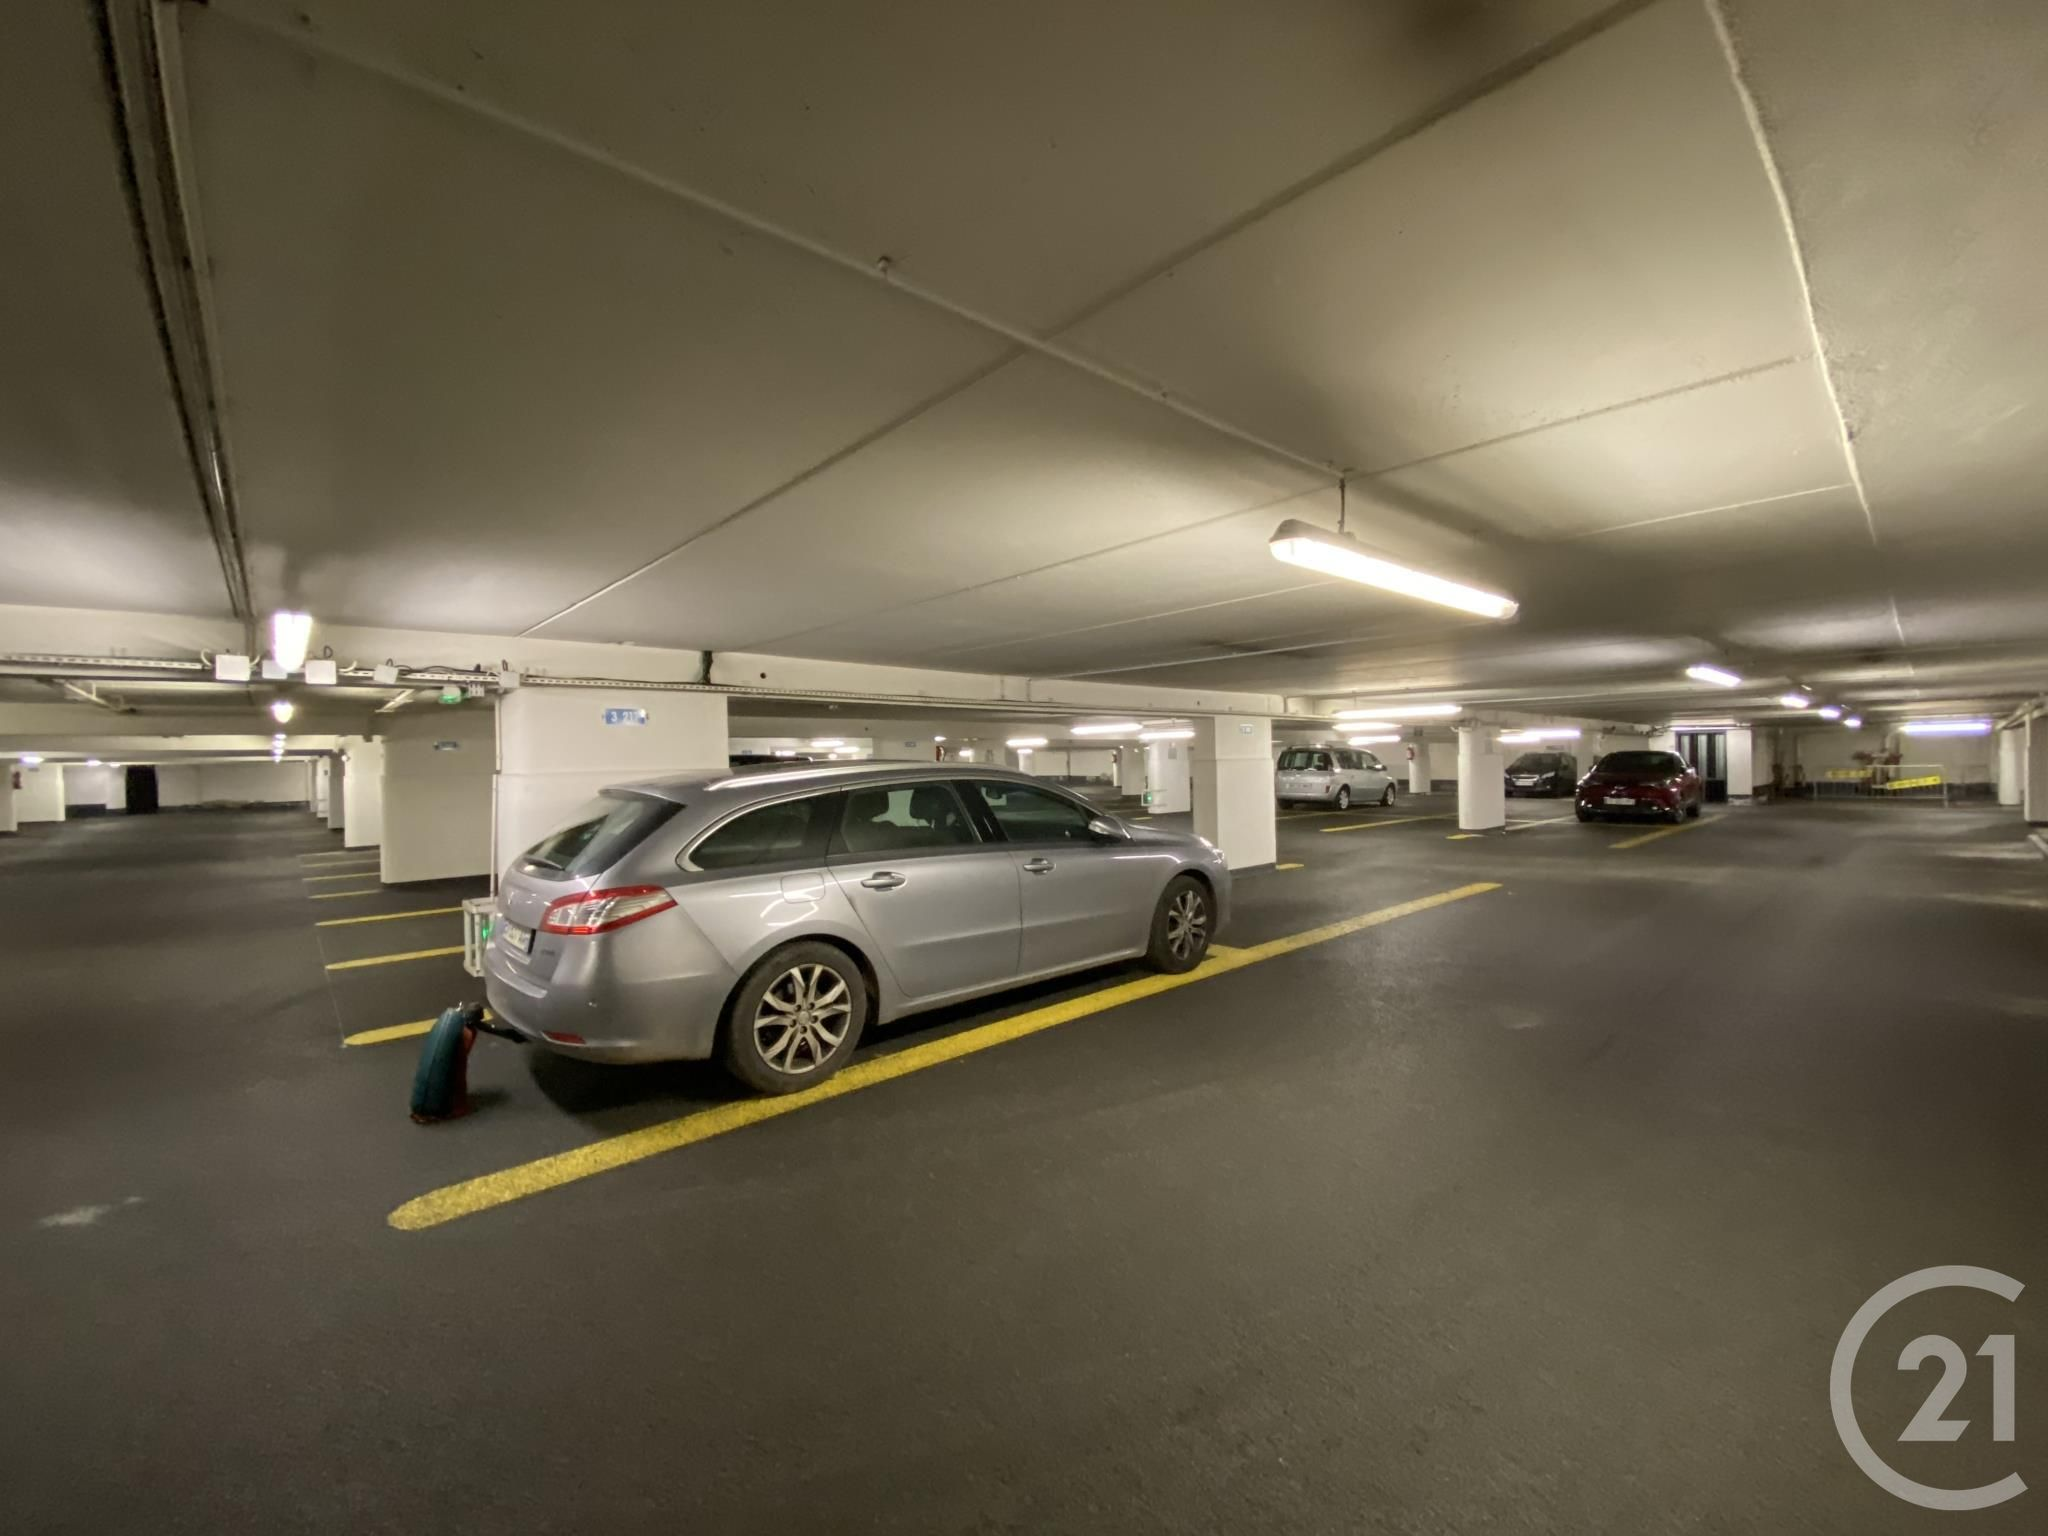 Parking à vendre - 12,0 m2 - PARIS - 75001 - ILE-DE-FRANCE